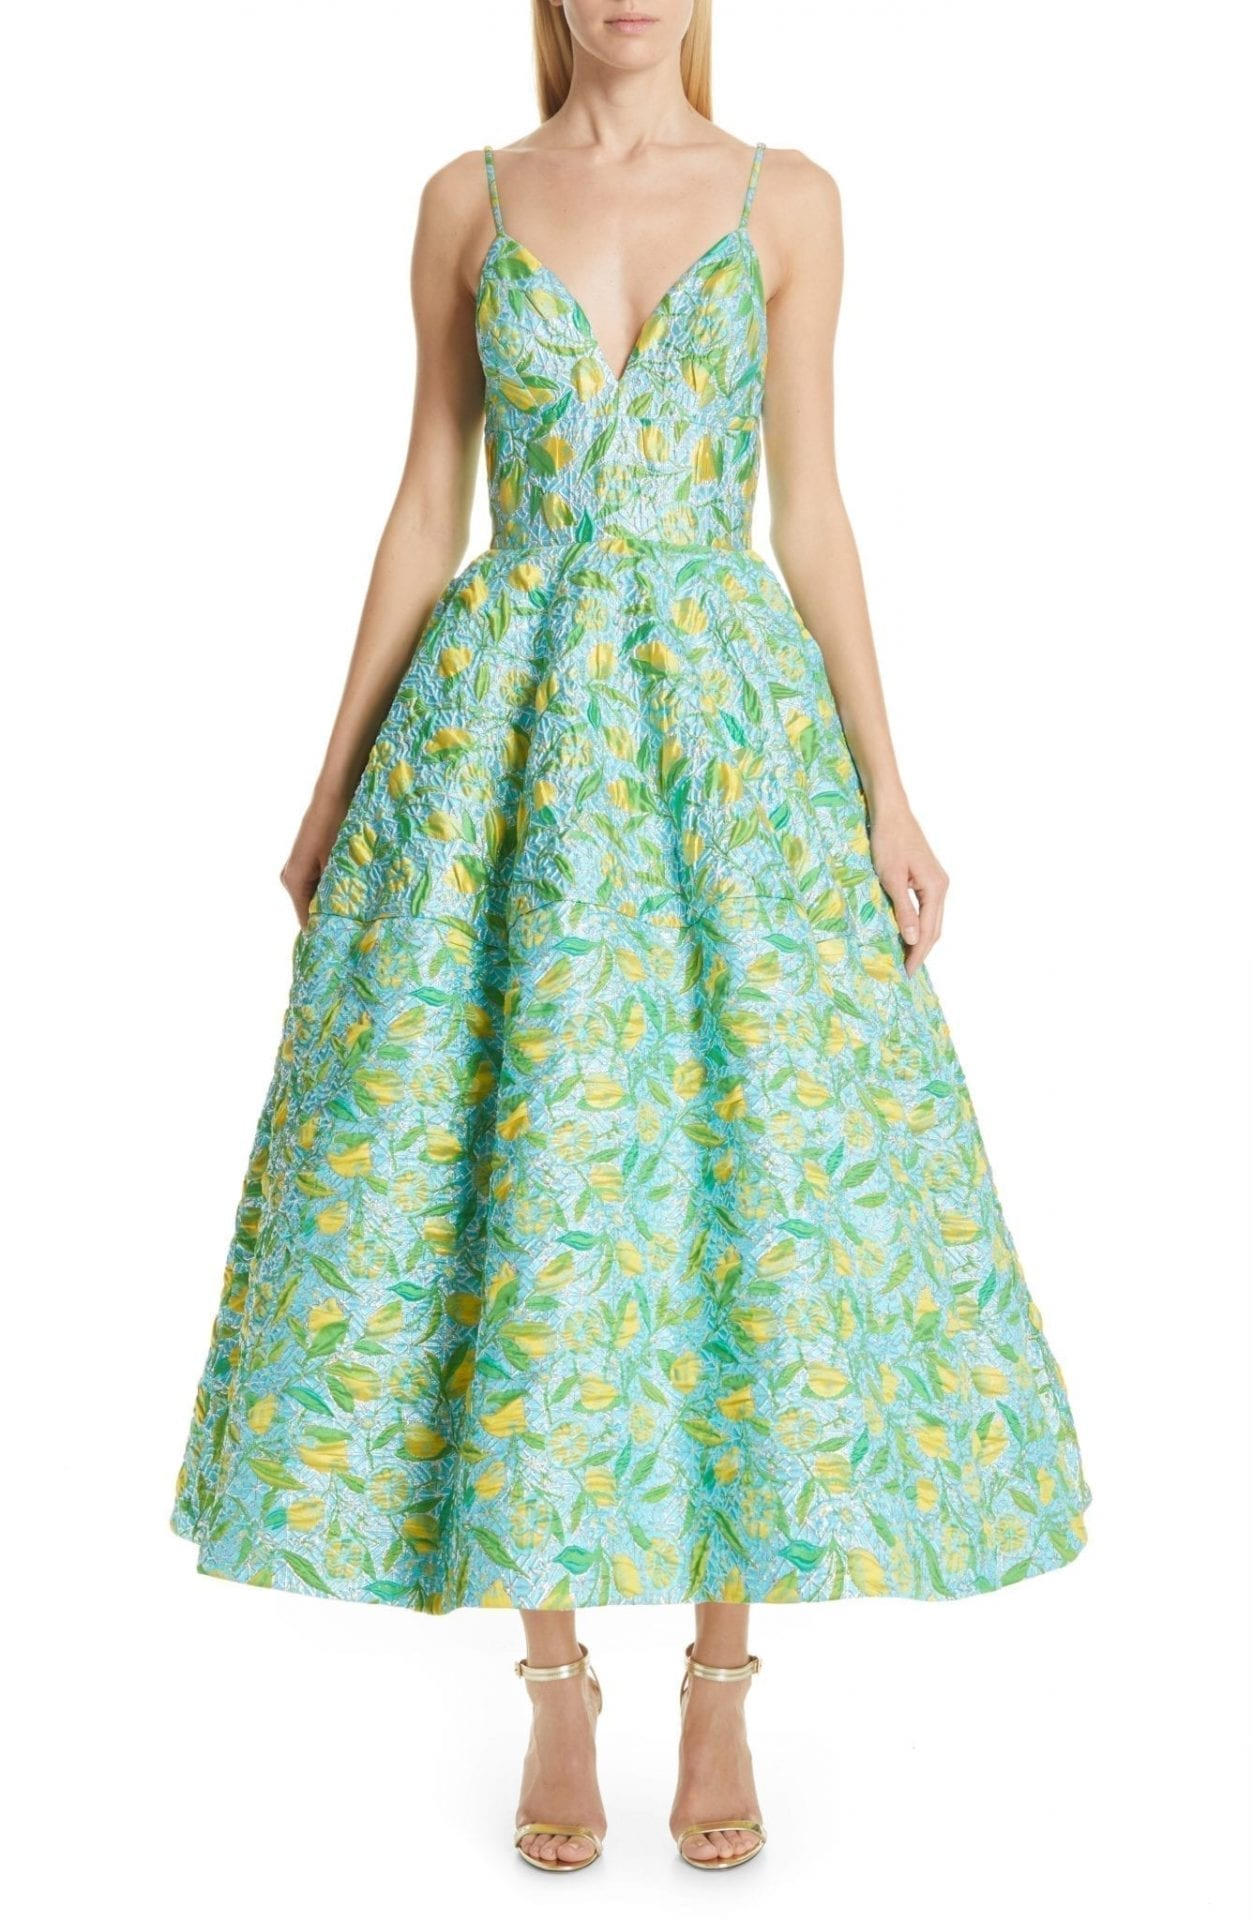 CHRISTIAN SIRIANO Floral Evening Lemon Dress